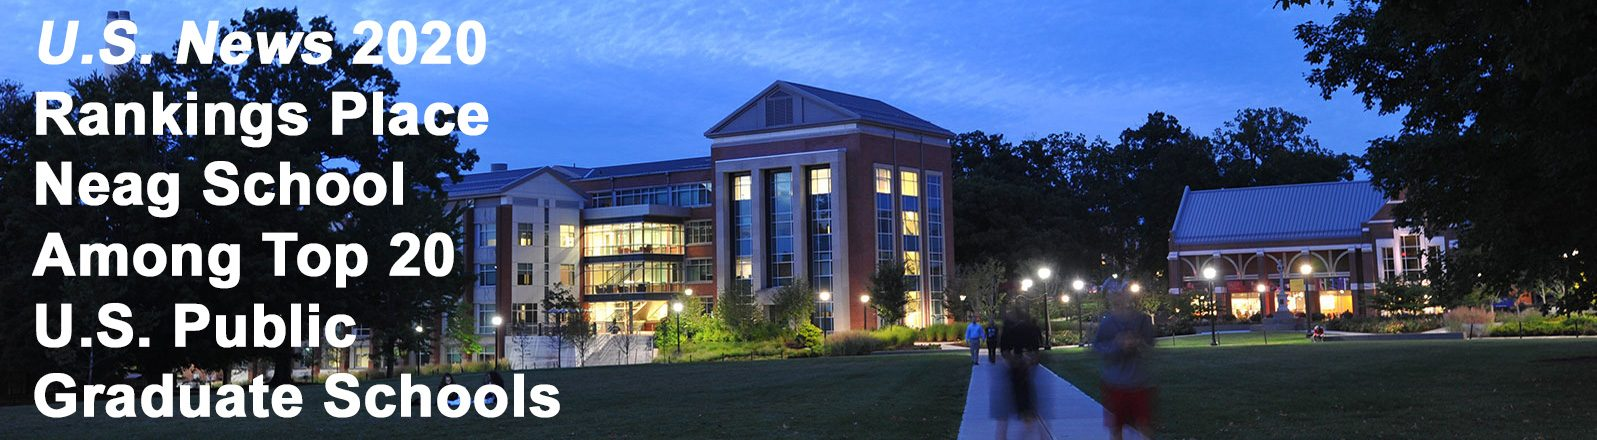 Neag building at night